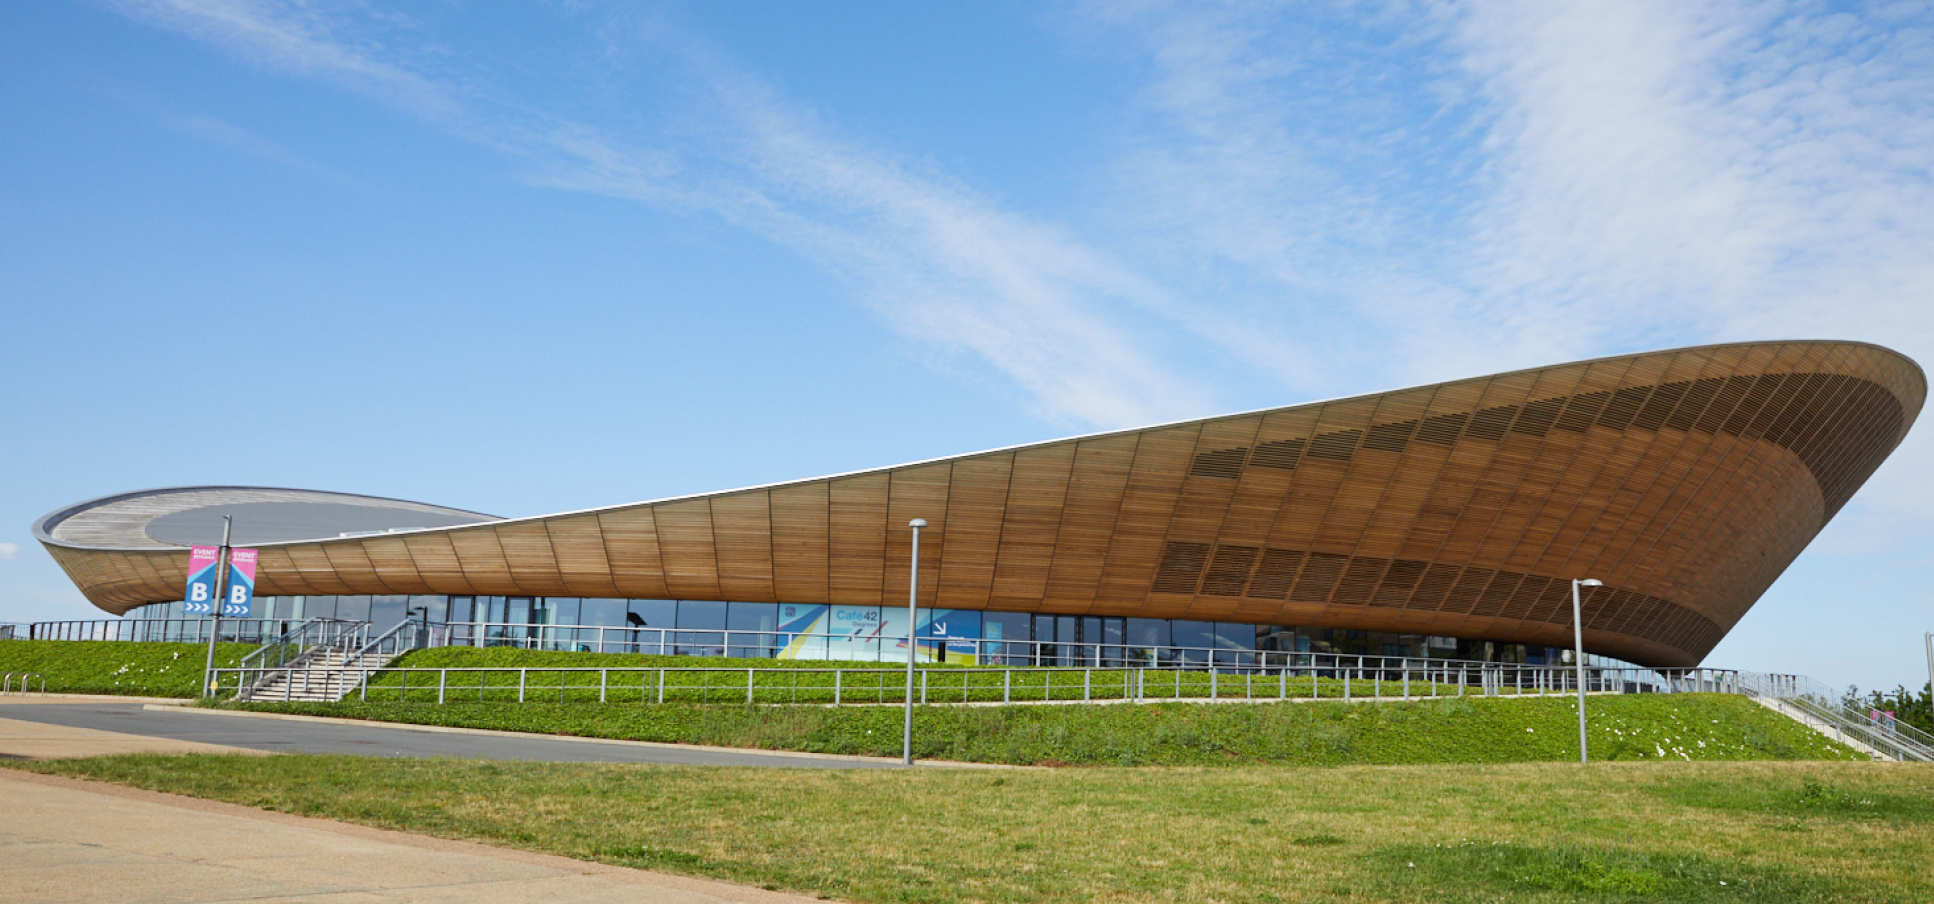 The event was held at the London Velodrome at the Olympic Park